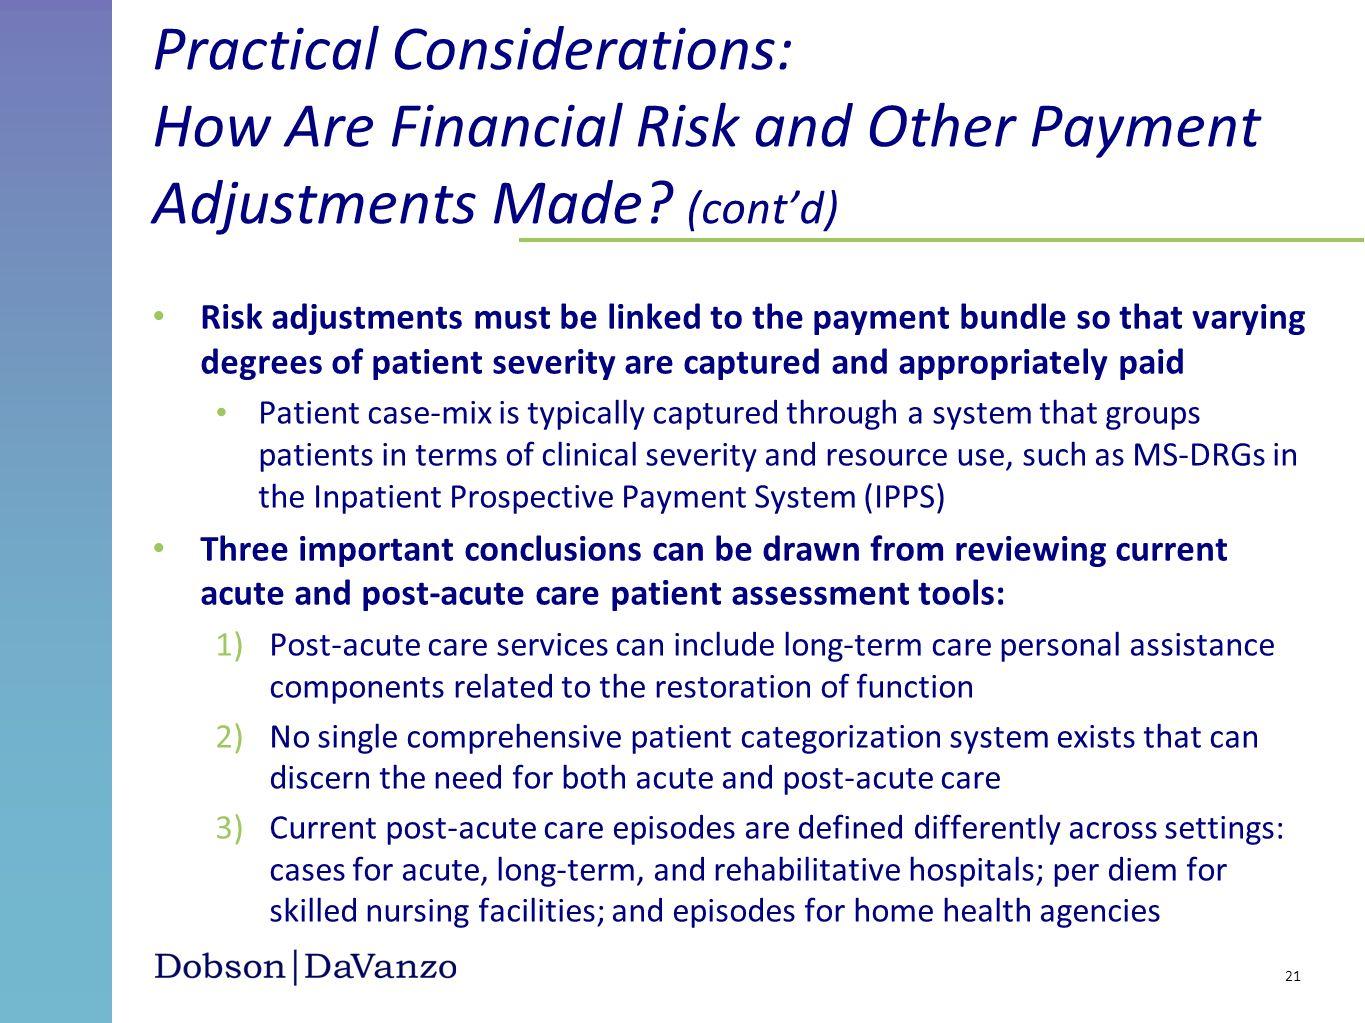 Risk adjustments must be linked to the payment bundle so that varying degrees of patient severity are captured and appropriately paid Patient case-mix